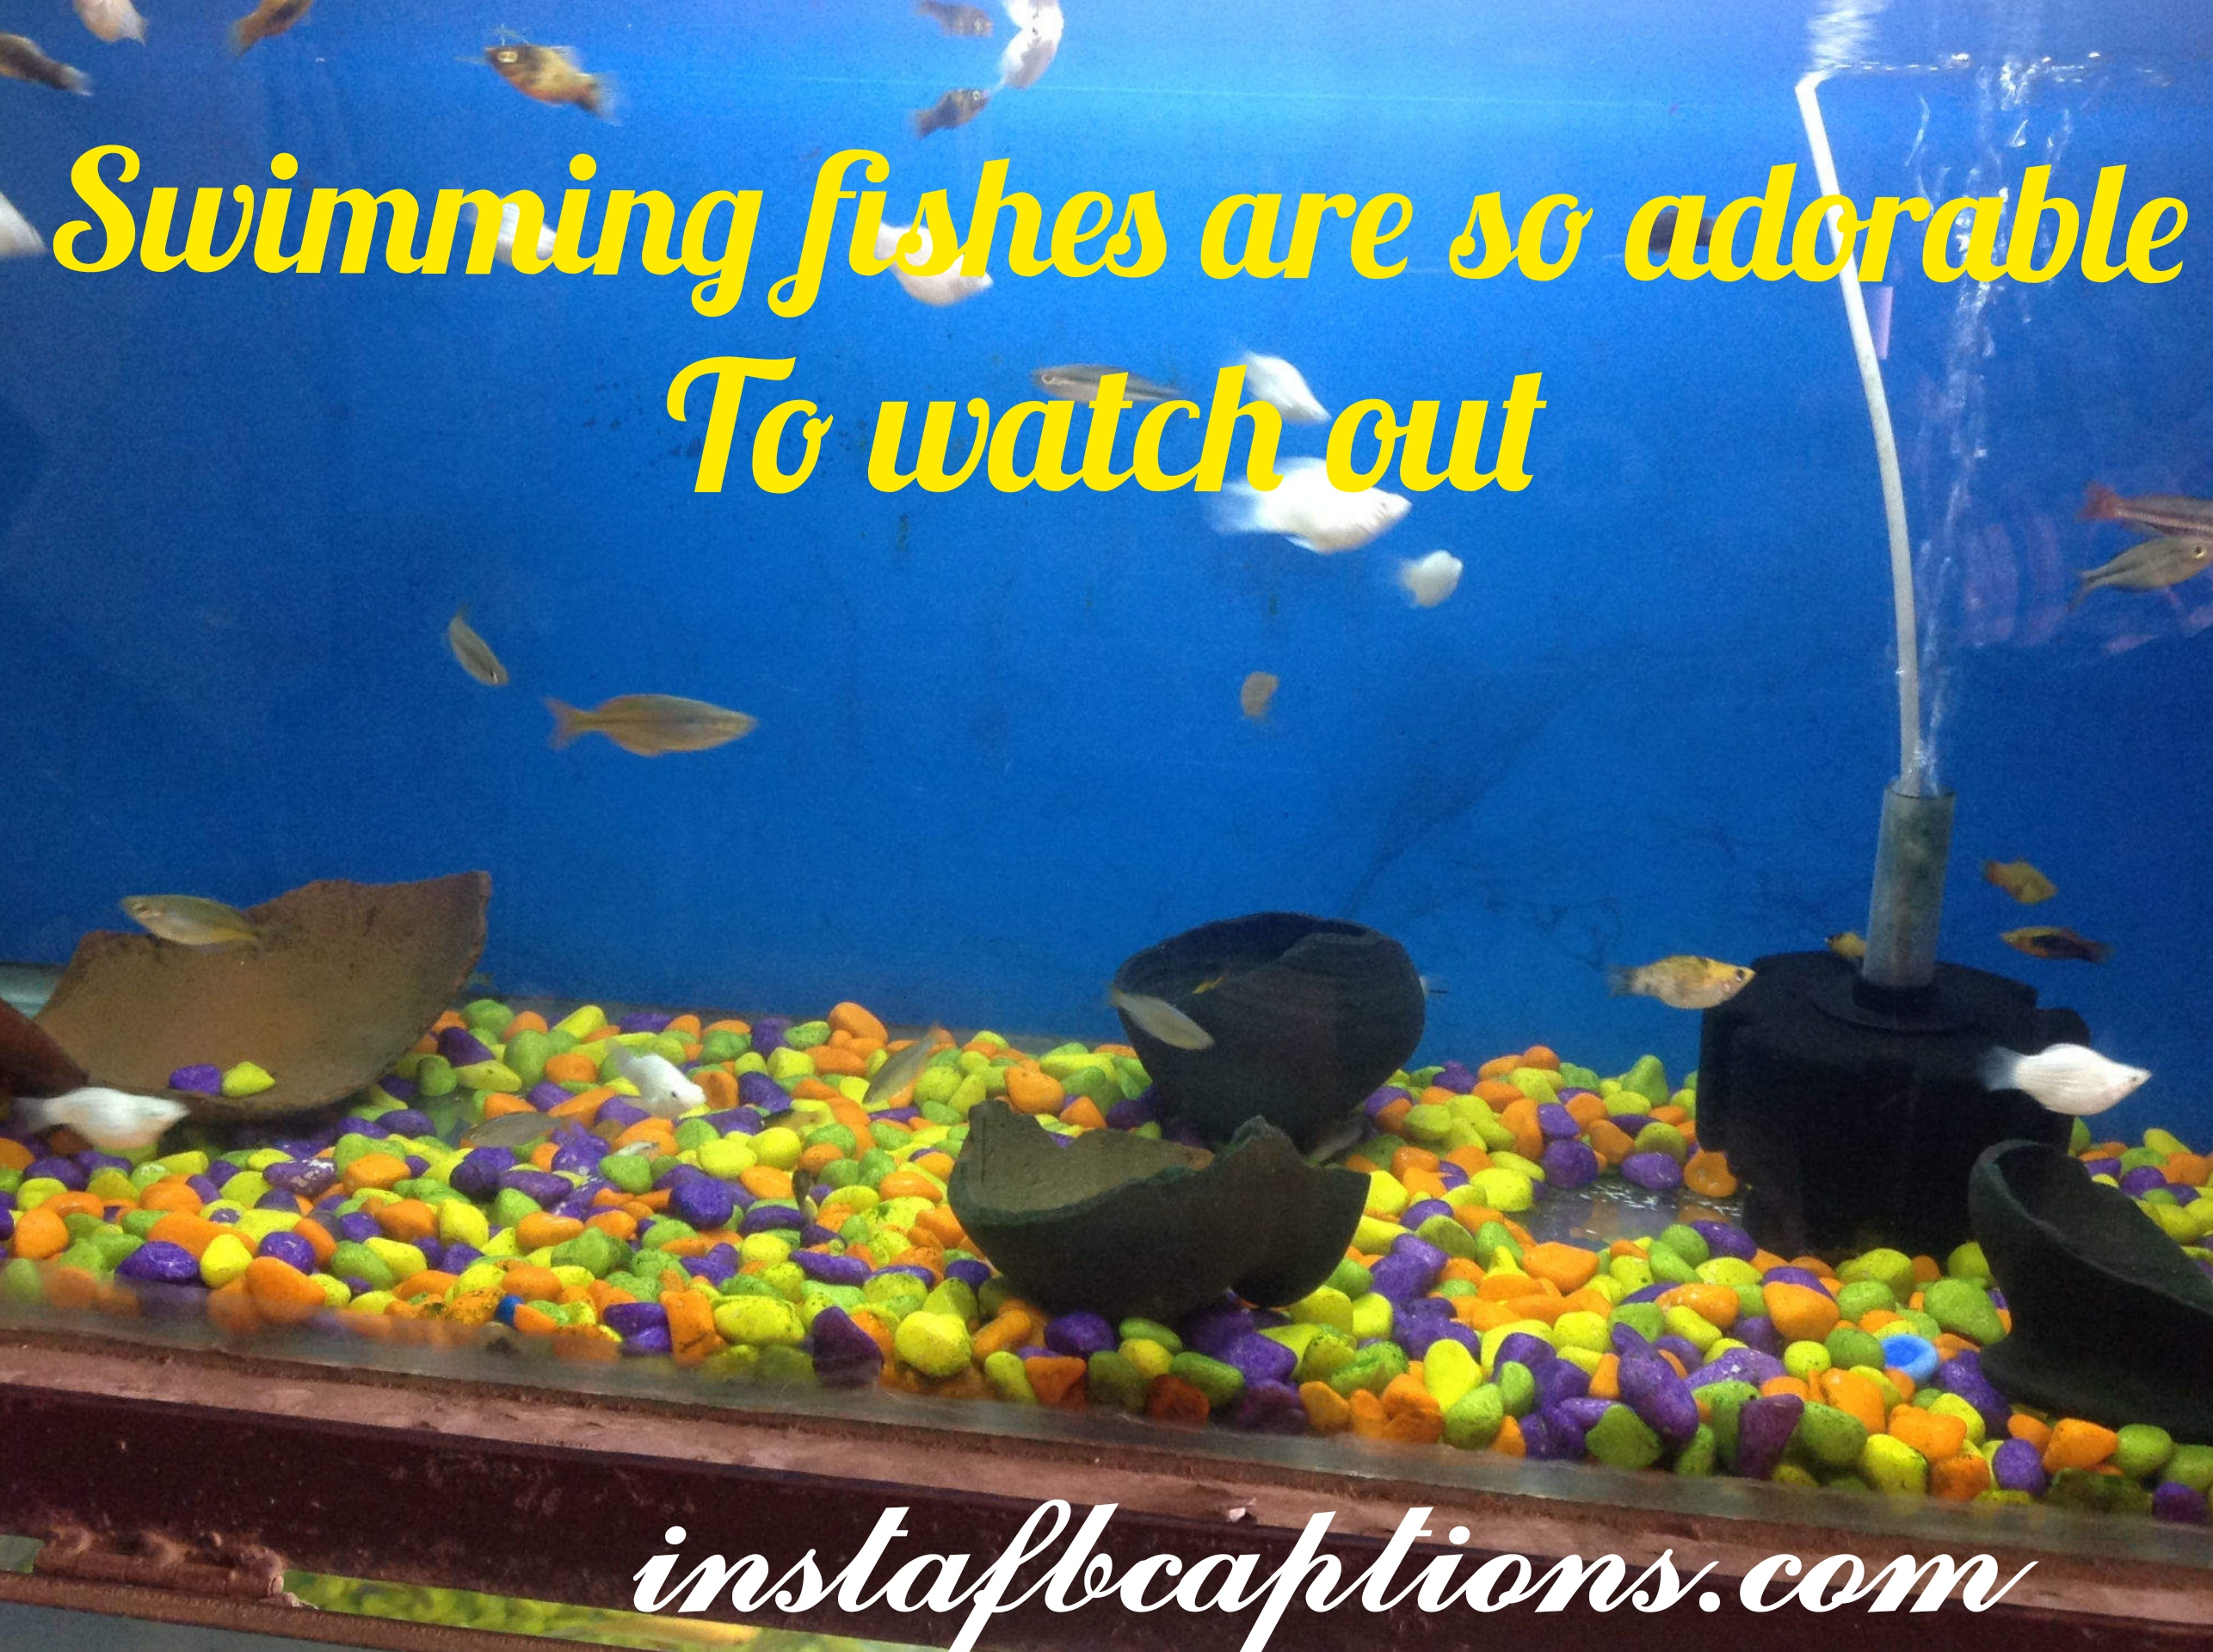 Swimming Fishes Are Adorable To Watch Out  - swimming fishes are adorable to watch out - Aquarium captions for Pet Fish||(cute planted nature)